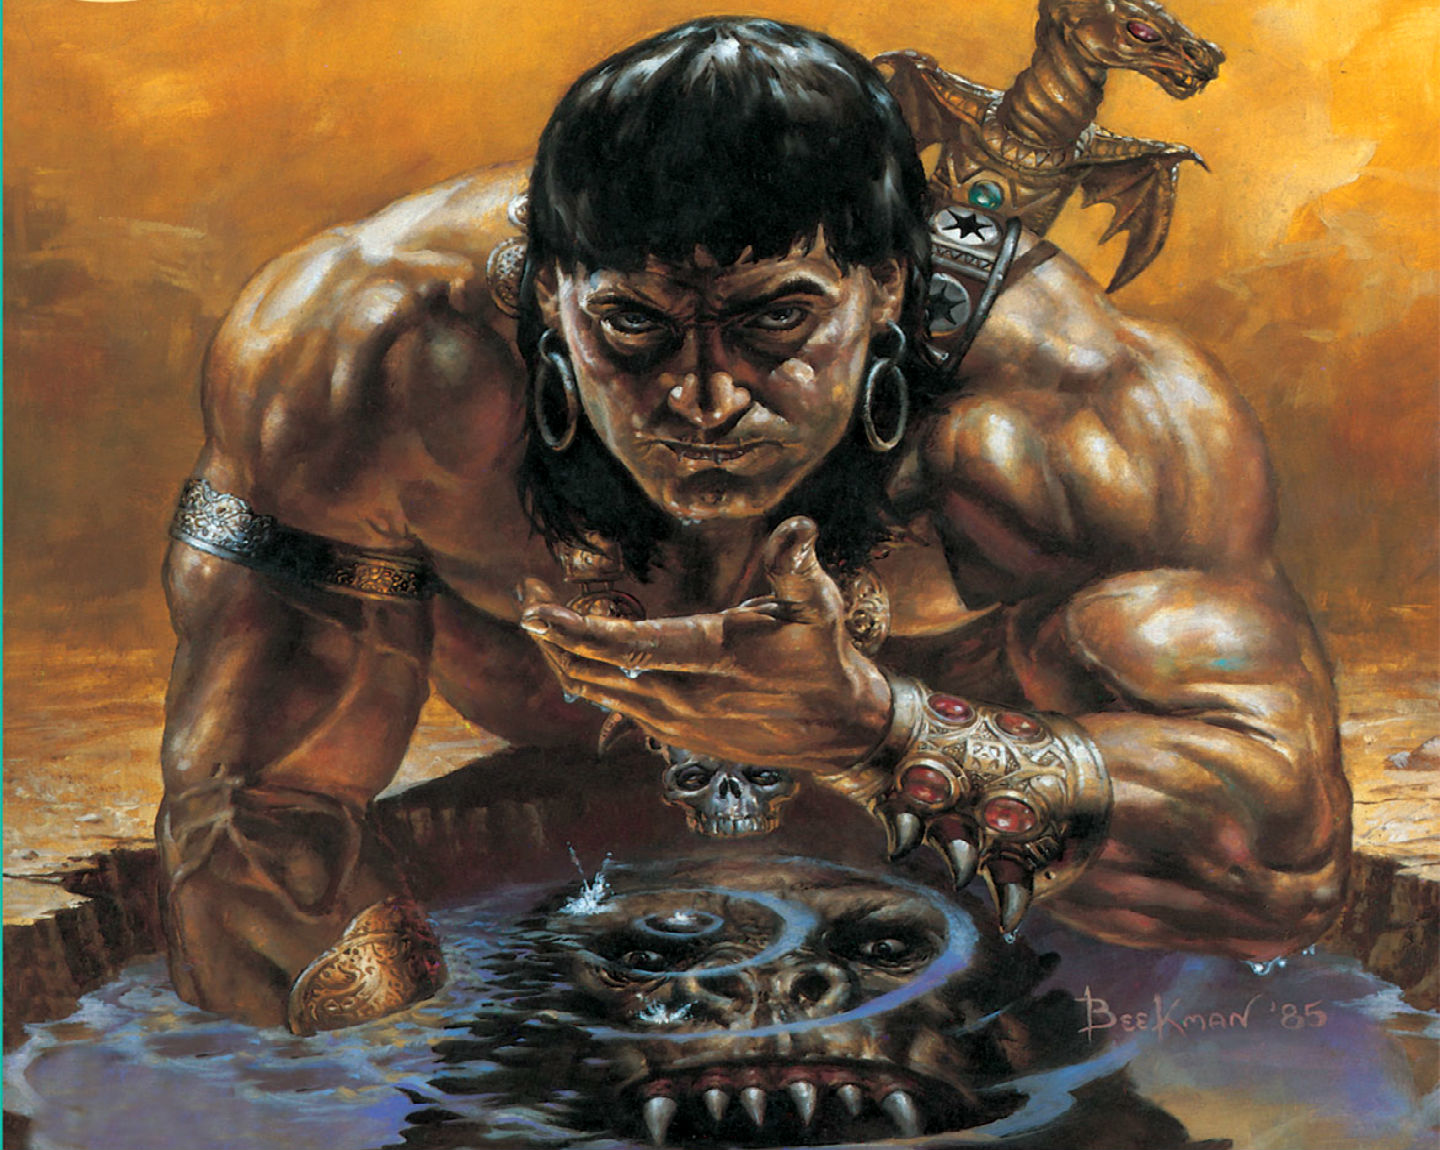 CONAN THE BARBARIAN l wallpaper 1440x1150 140192 1440x1150